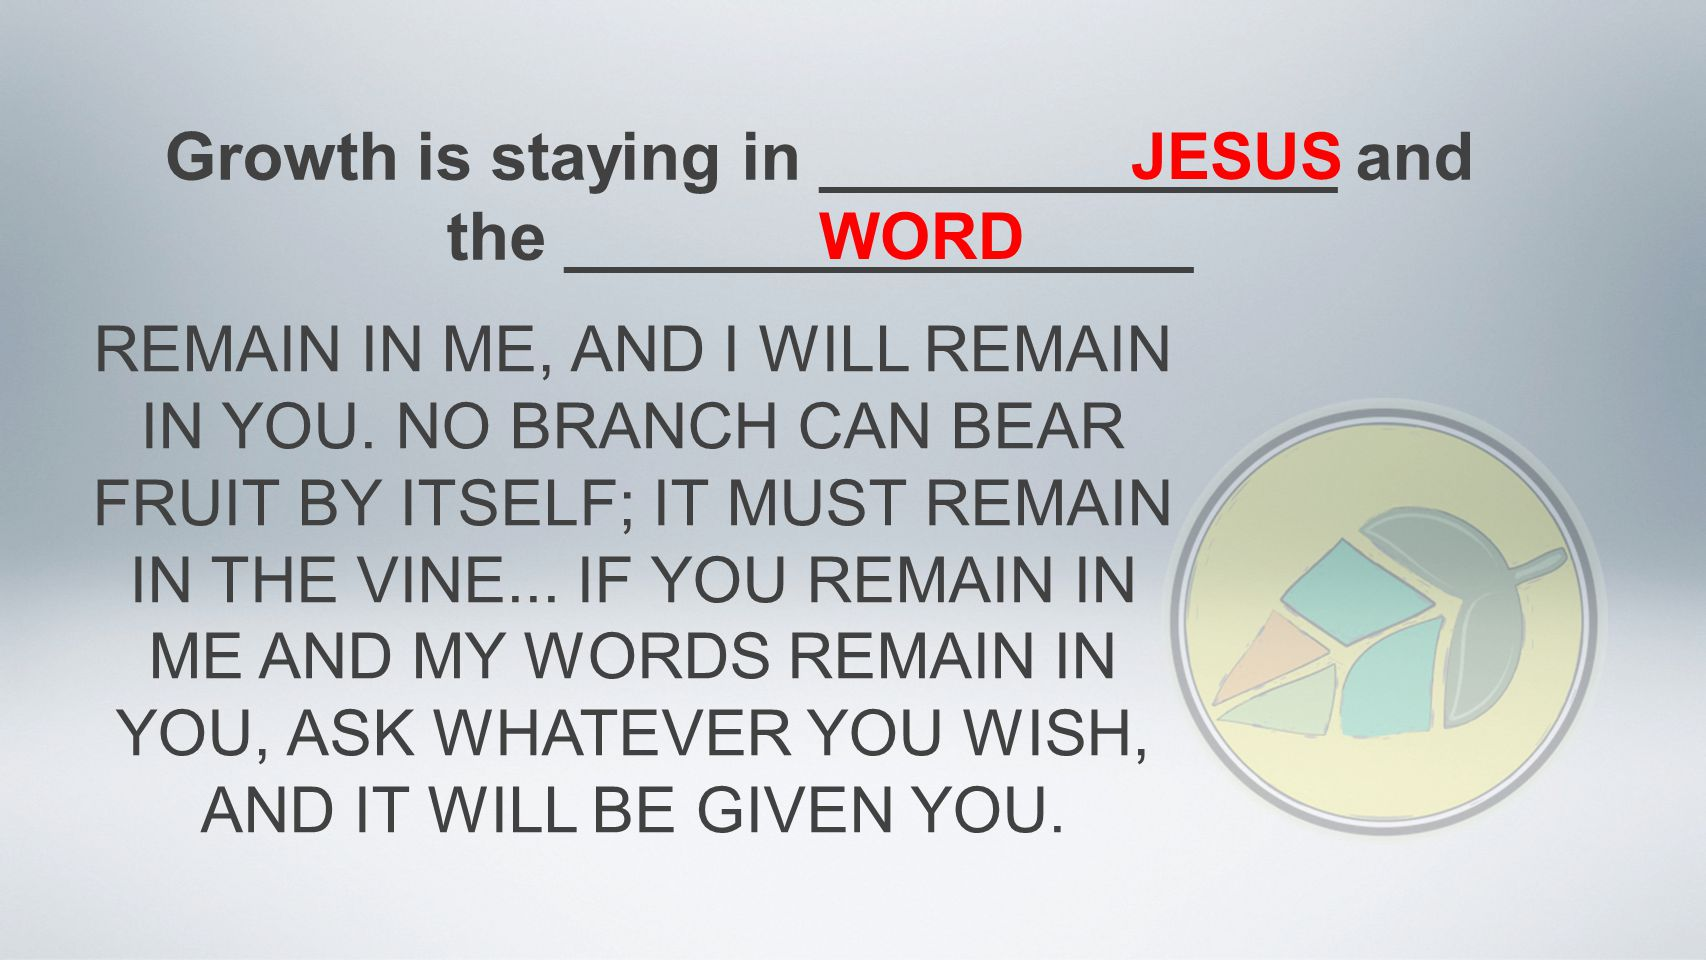 Growth is staying in ______________ and the _________________ JESUS WORD REMAIN IN ME, AND I WILL REMAIN IN YOU.